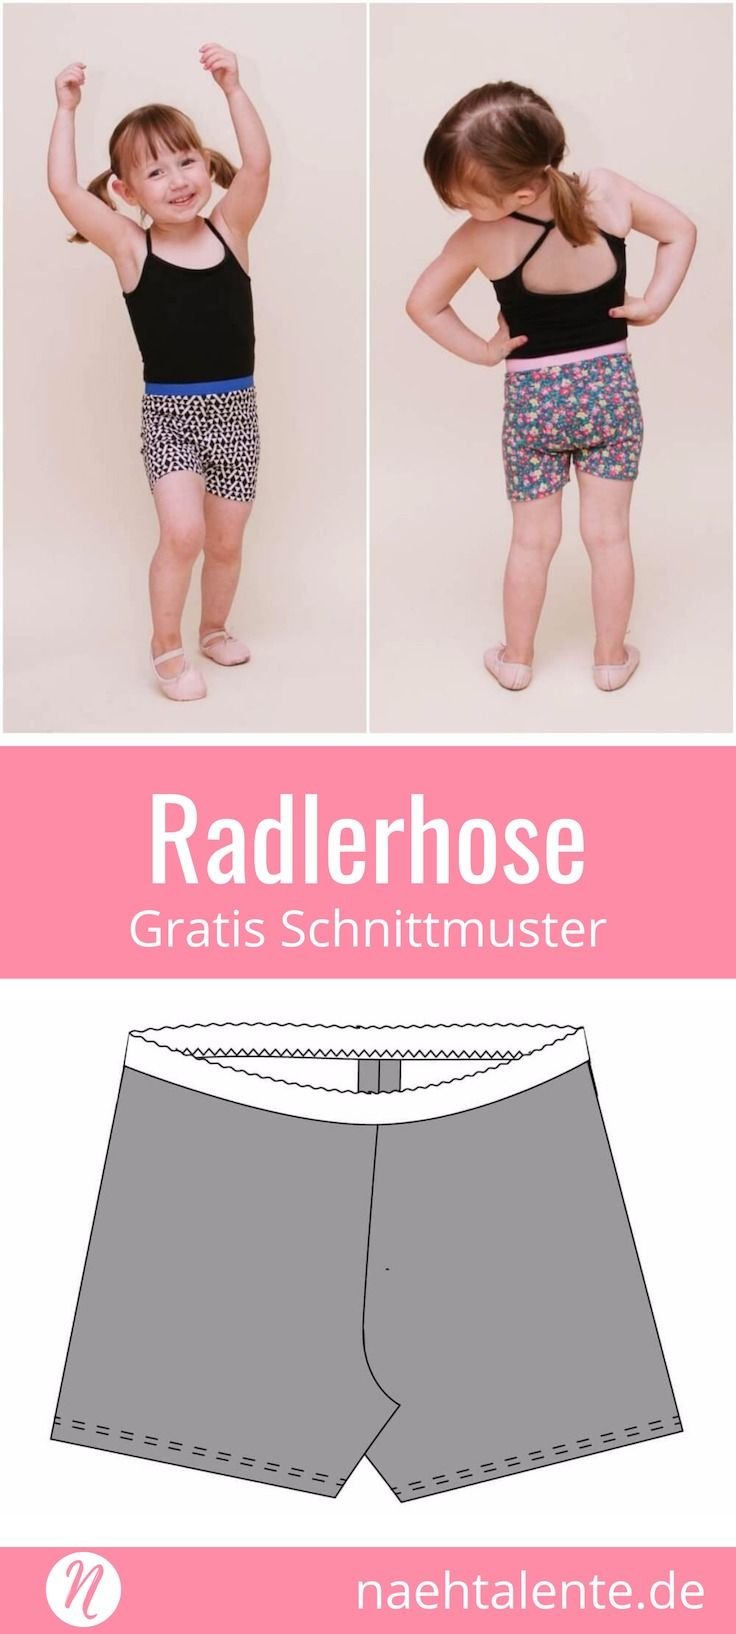 Radlerhose für Kinder - Freebook | Pinterest | Radlerhose, Shorts ...